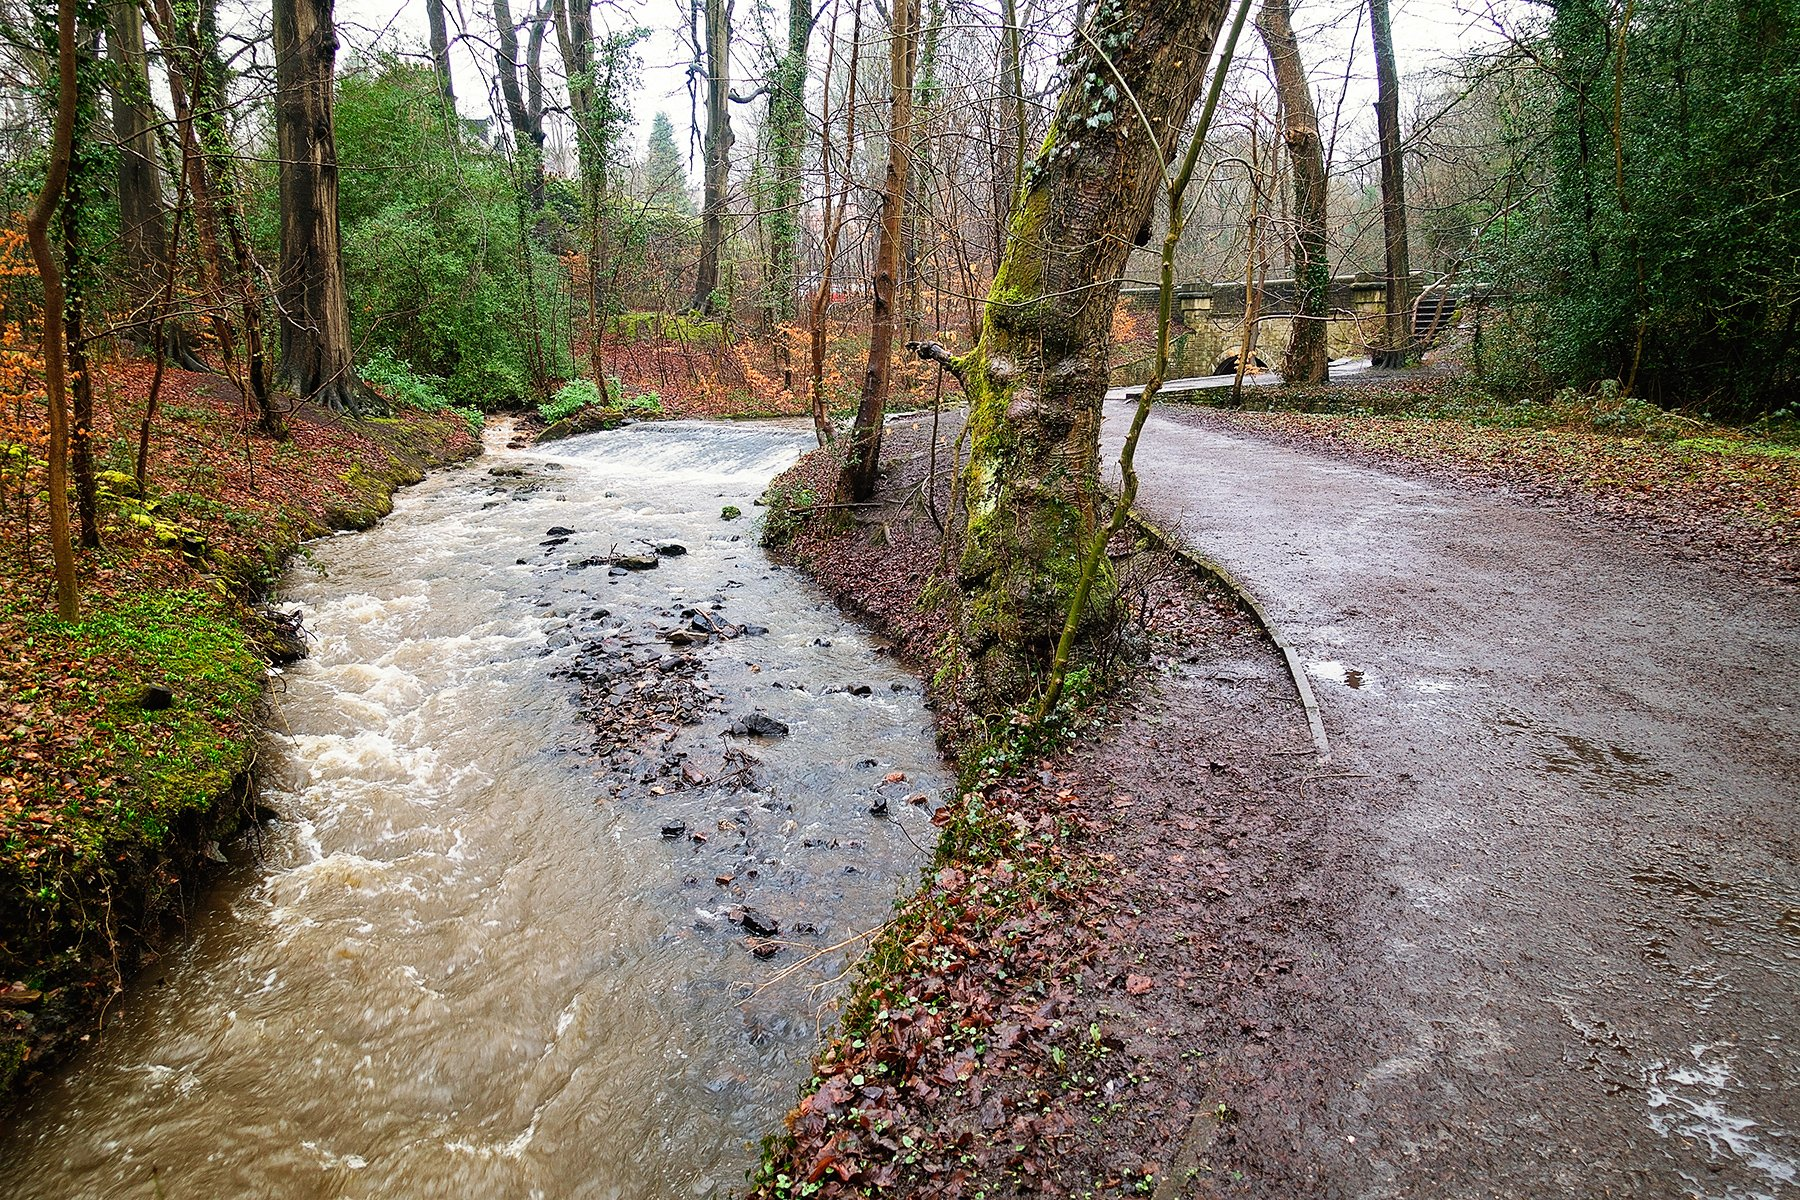 Endcliffe park to Forge Dam walk